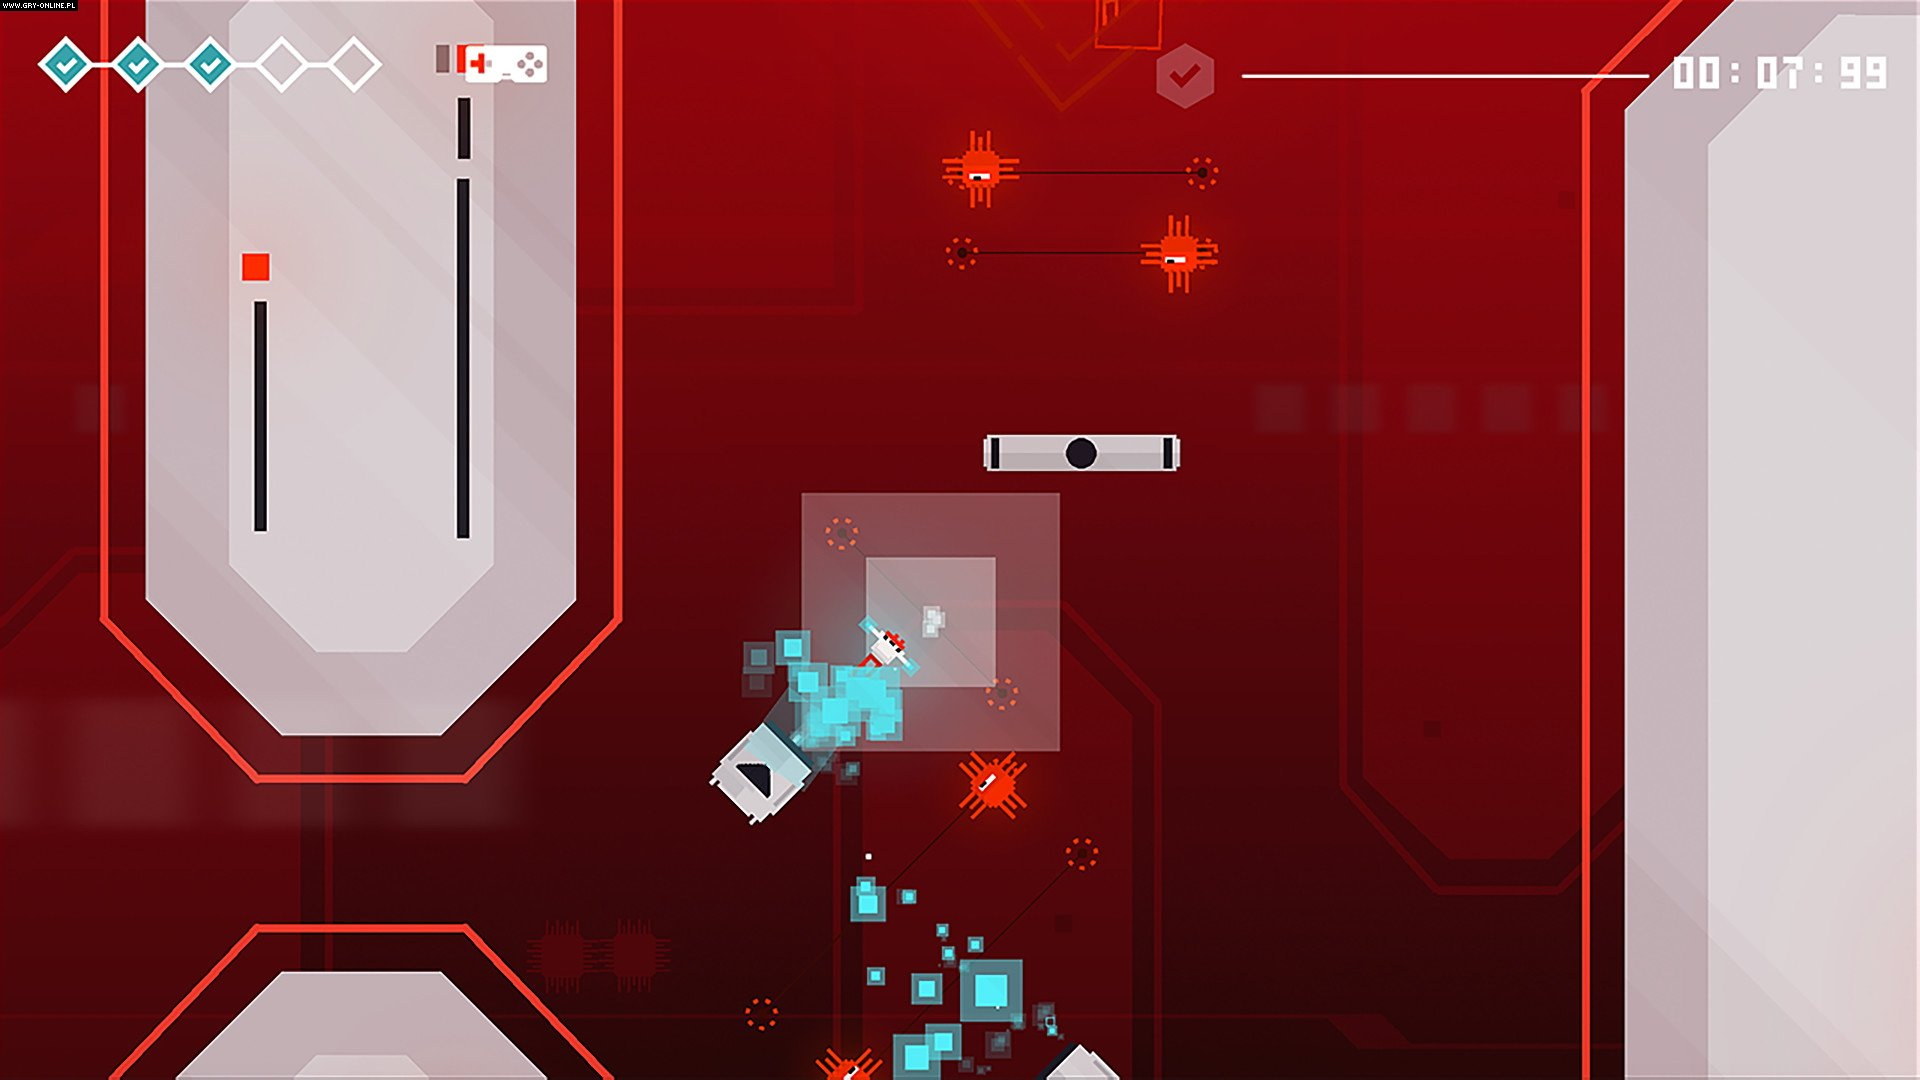 HoPiKo PC, PS4, XONE, AND, iOS Gry Screen 4/13, Laser Dog Games, Merge Games